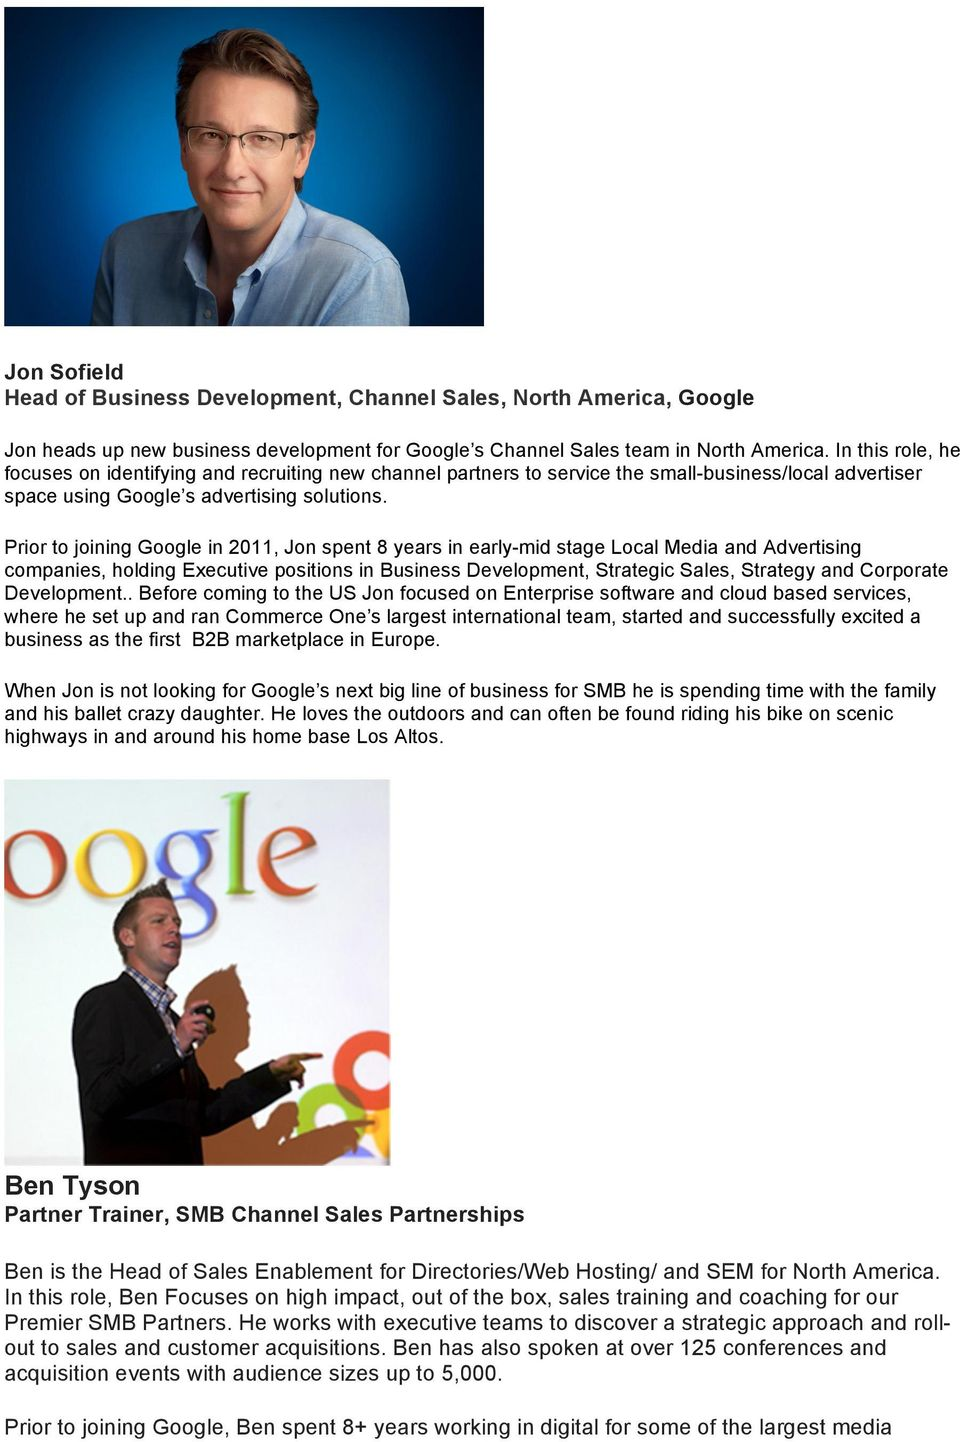 Prior to joining Google in 2011, Jon spent 8 years in early-mid stage Local Media and Advertising companies, holding Executive positions in Business Development, Strategic Sales, Strategy and